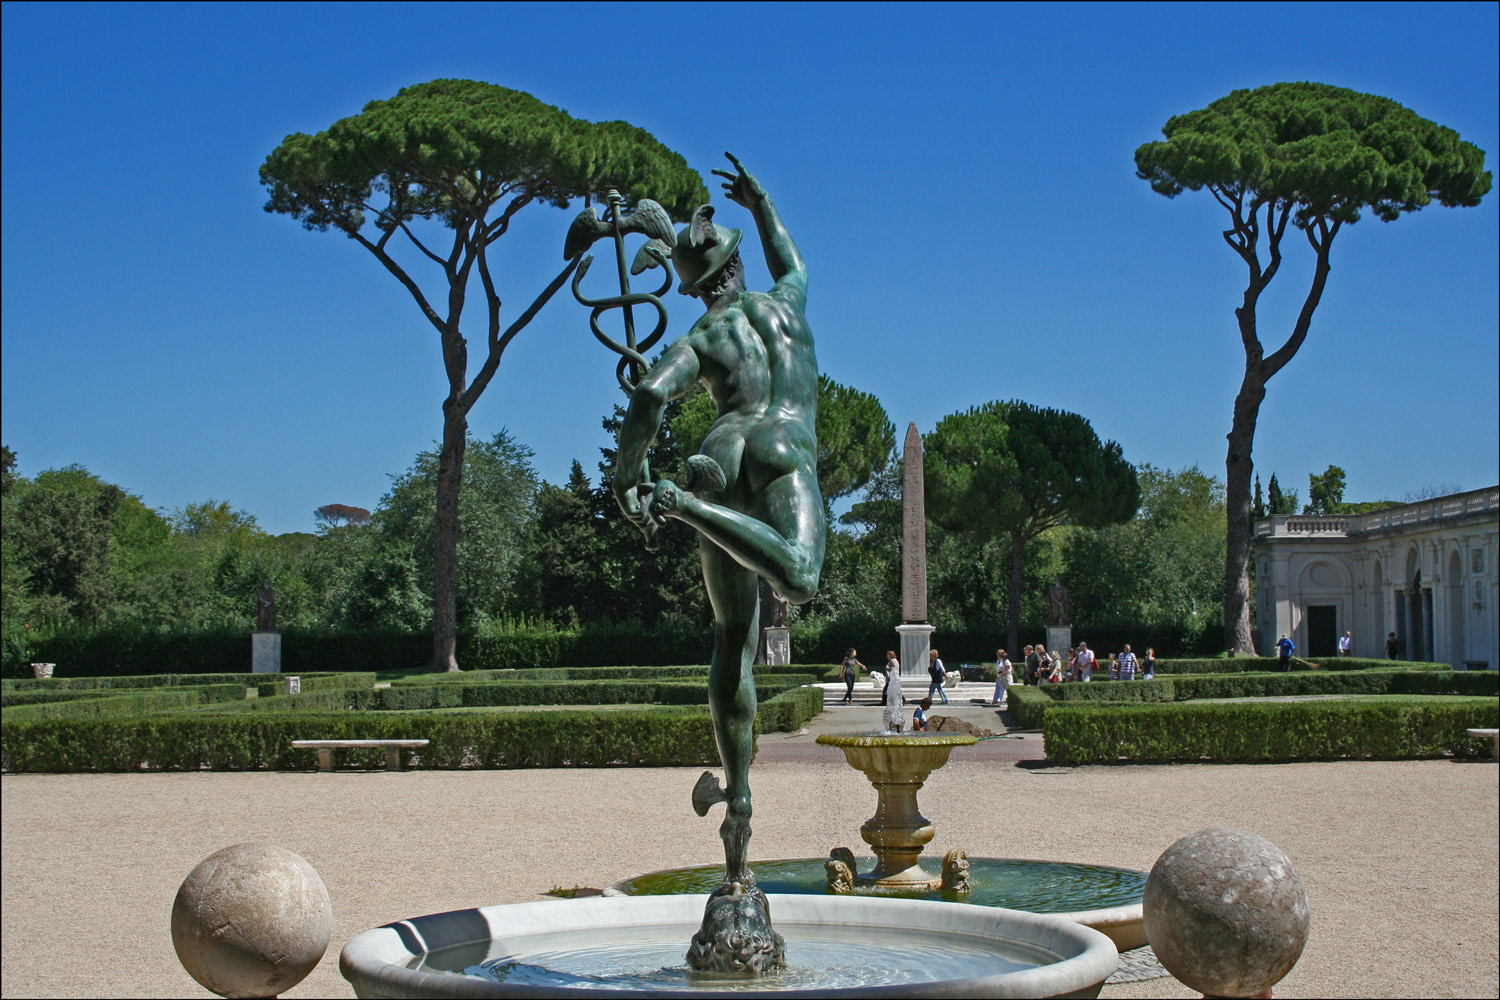 Sculpture of Mercury and the Obelisk at Villa Medici